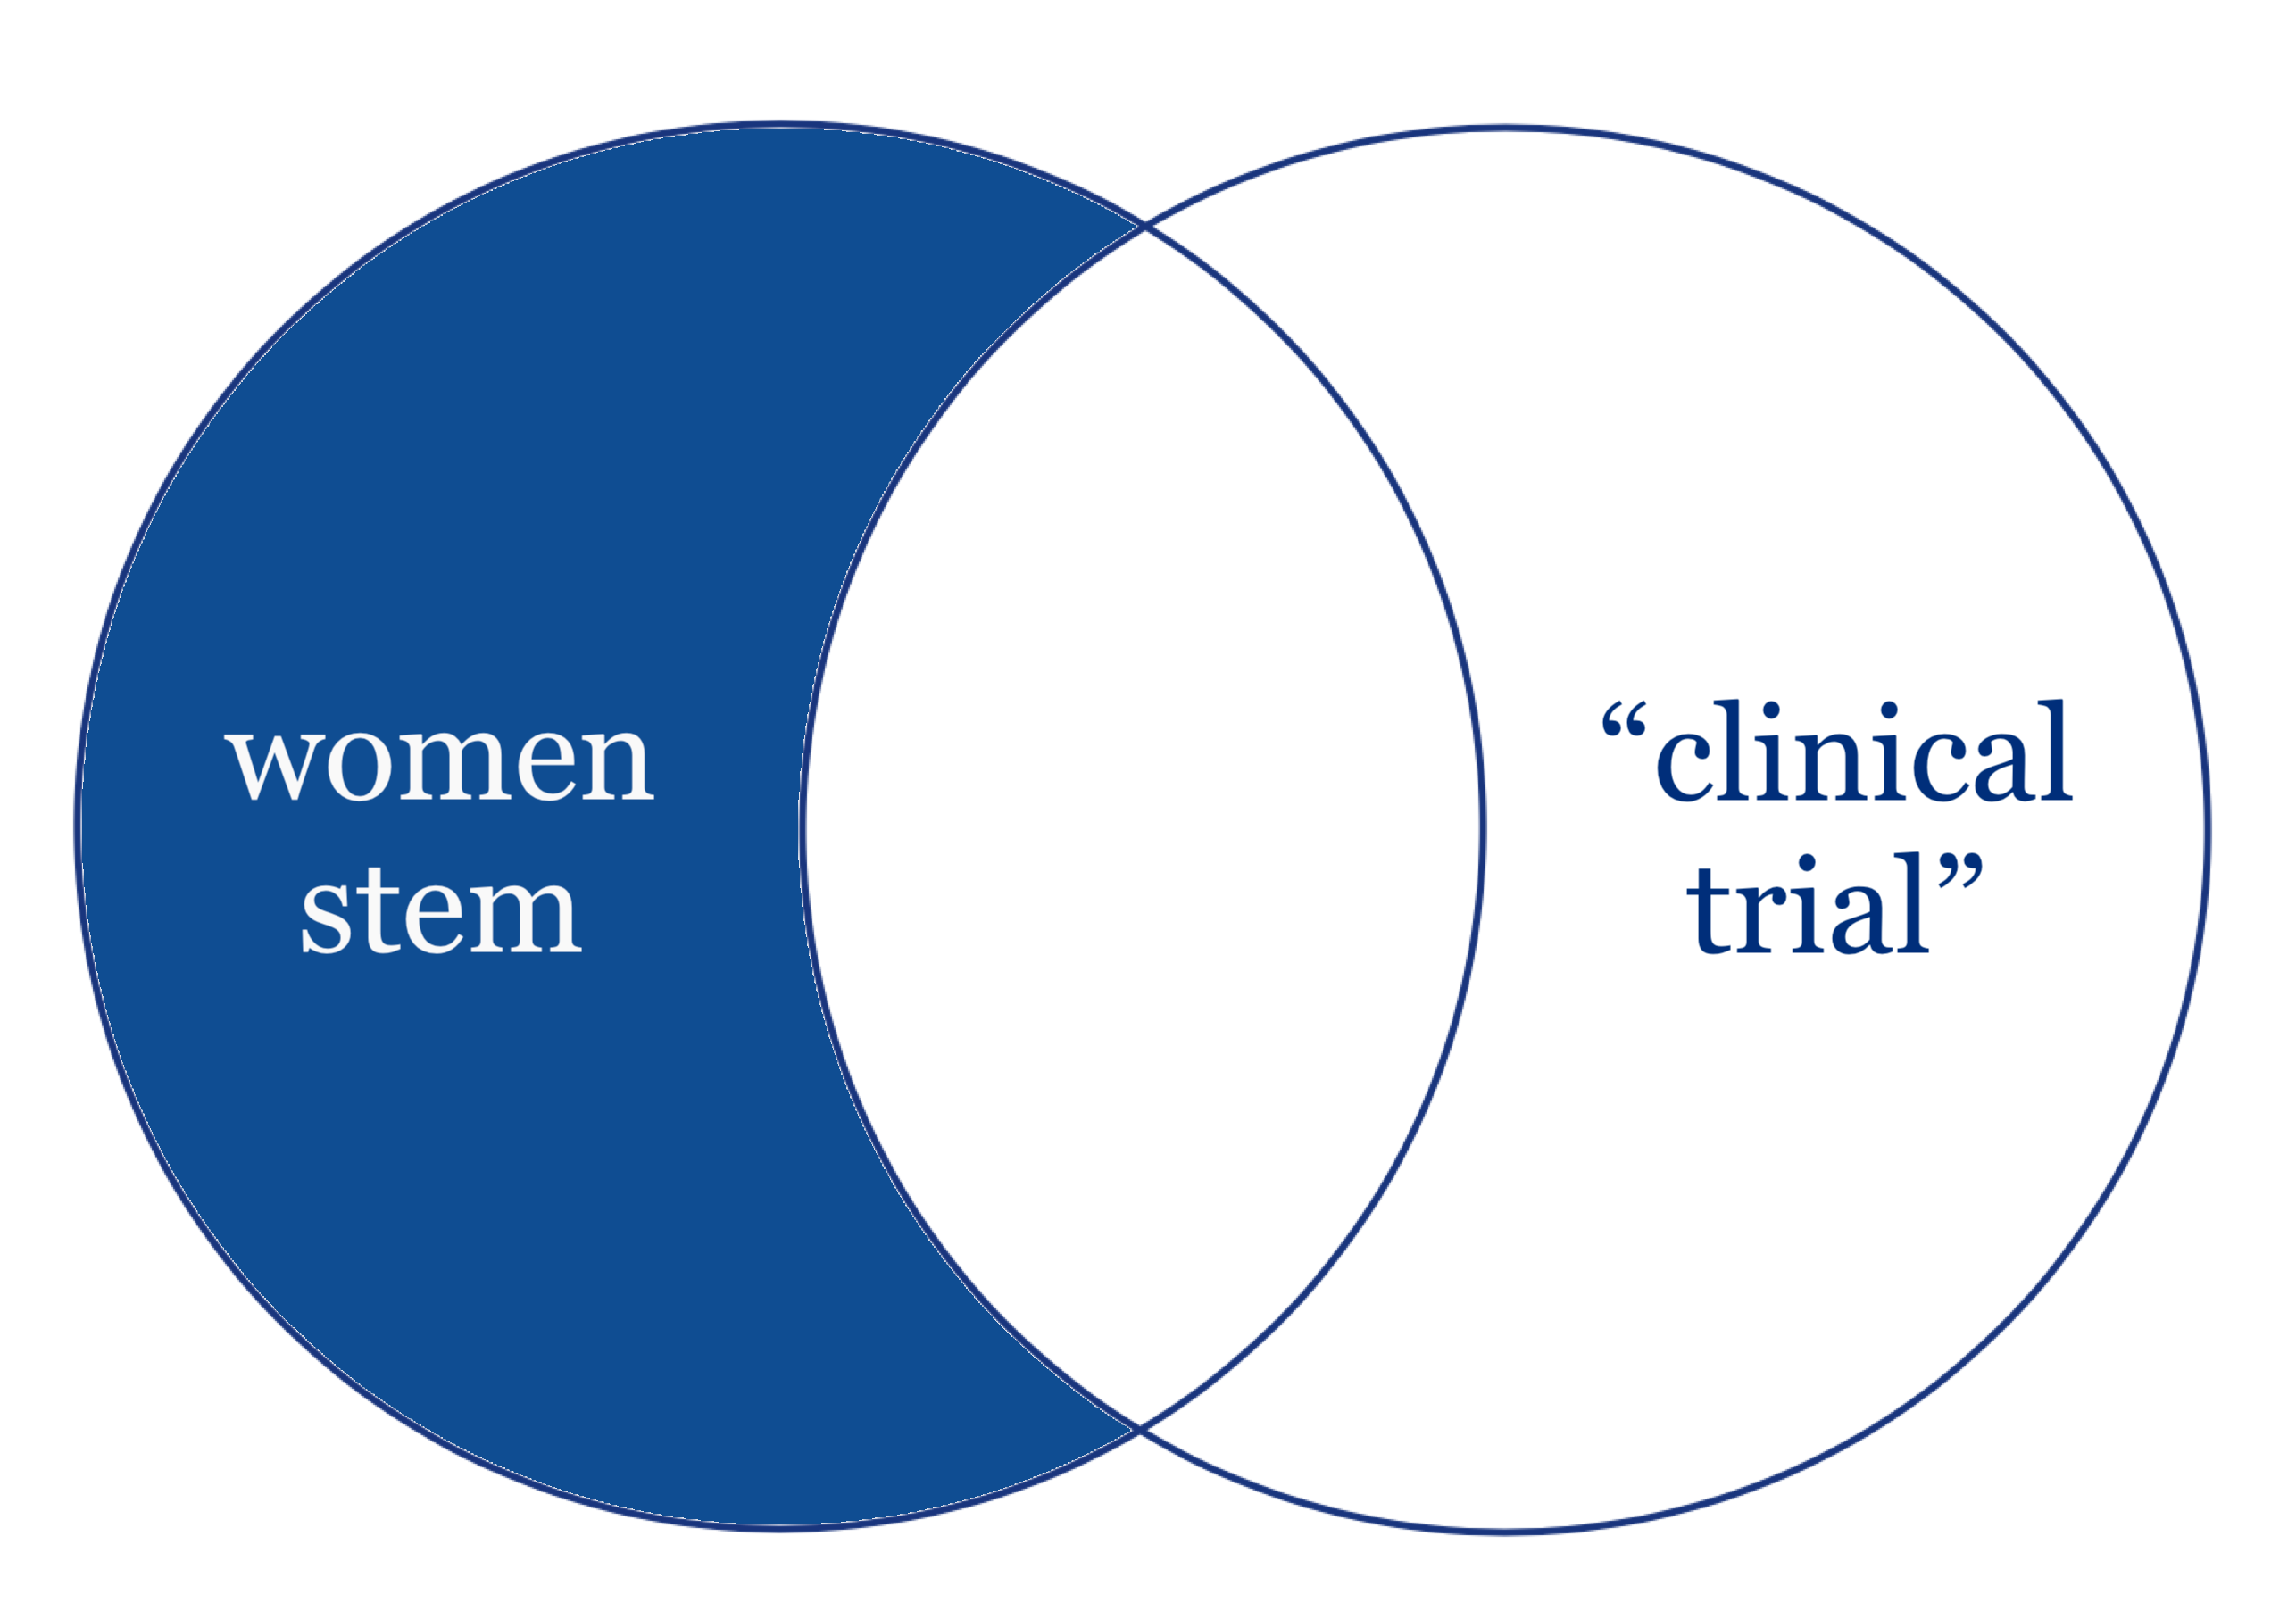 A search for things about women in STEM without any false positives for clinical trials.